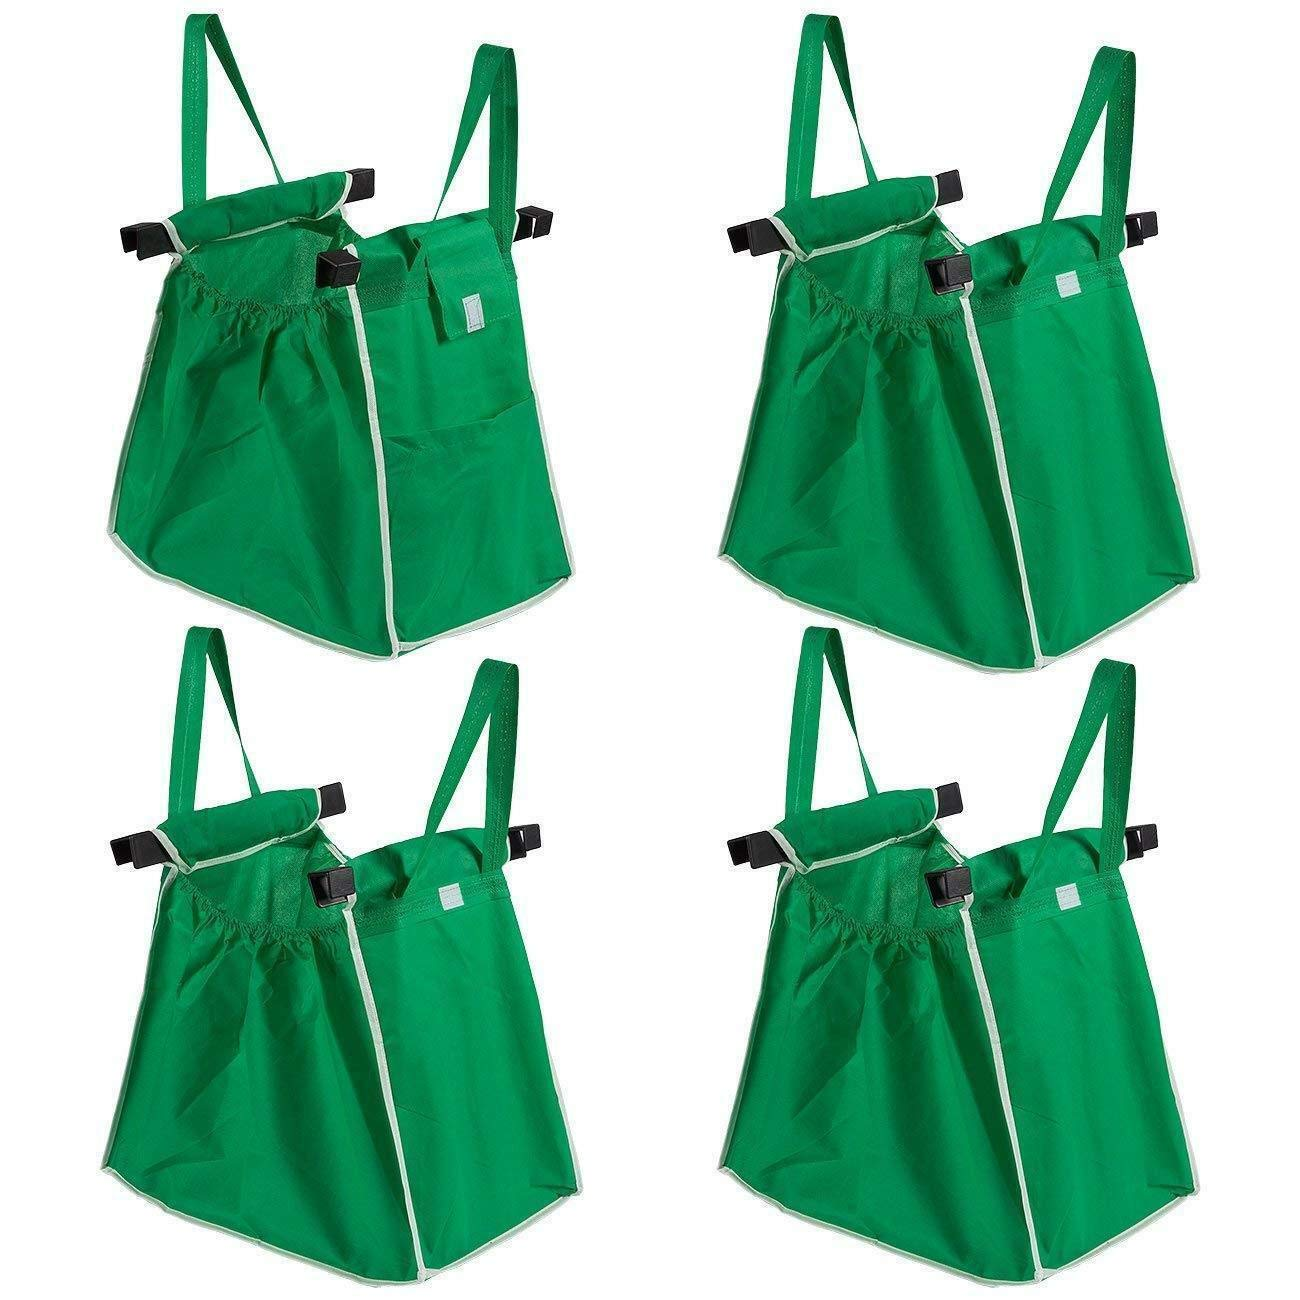 Lovely999 New 4 pcs Grocery Shopping Bag Foldable Tote Eco-Friendly Reusable Carrier Bags 2 Adjustable Strong Straps for Heavy Duty.Allowing Shoppers to Feel Smart and Confident. by Lovely999